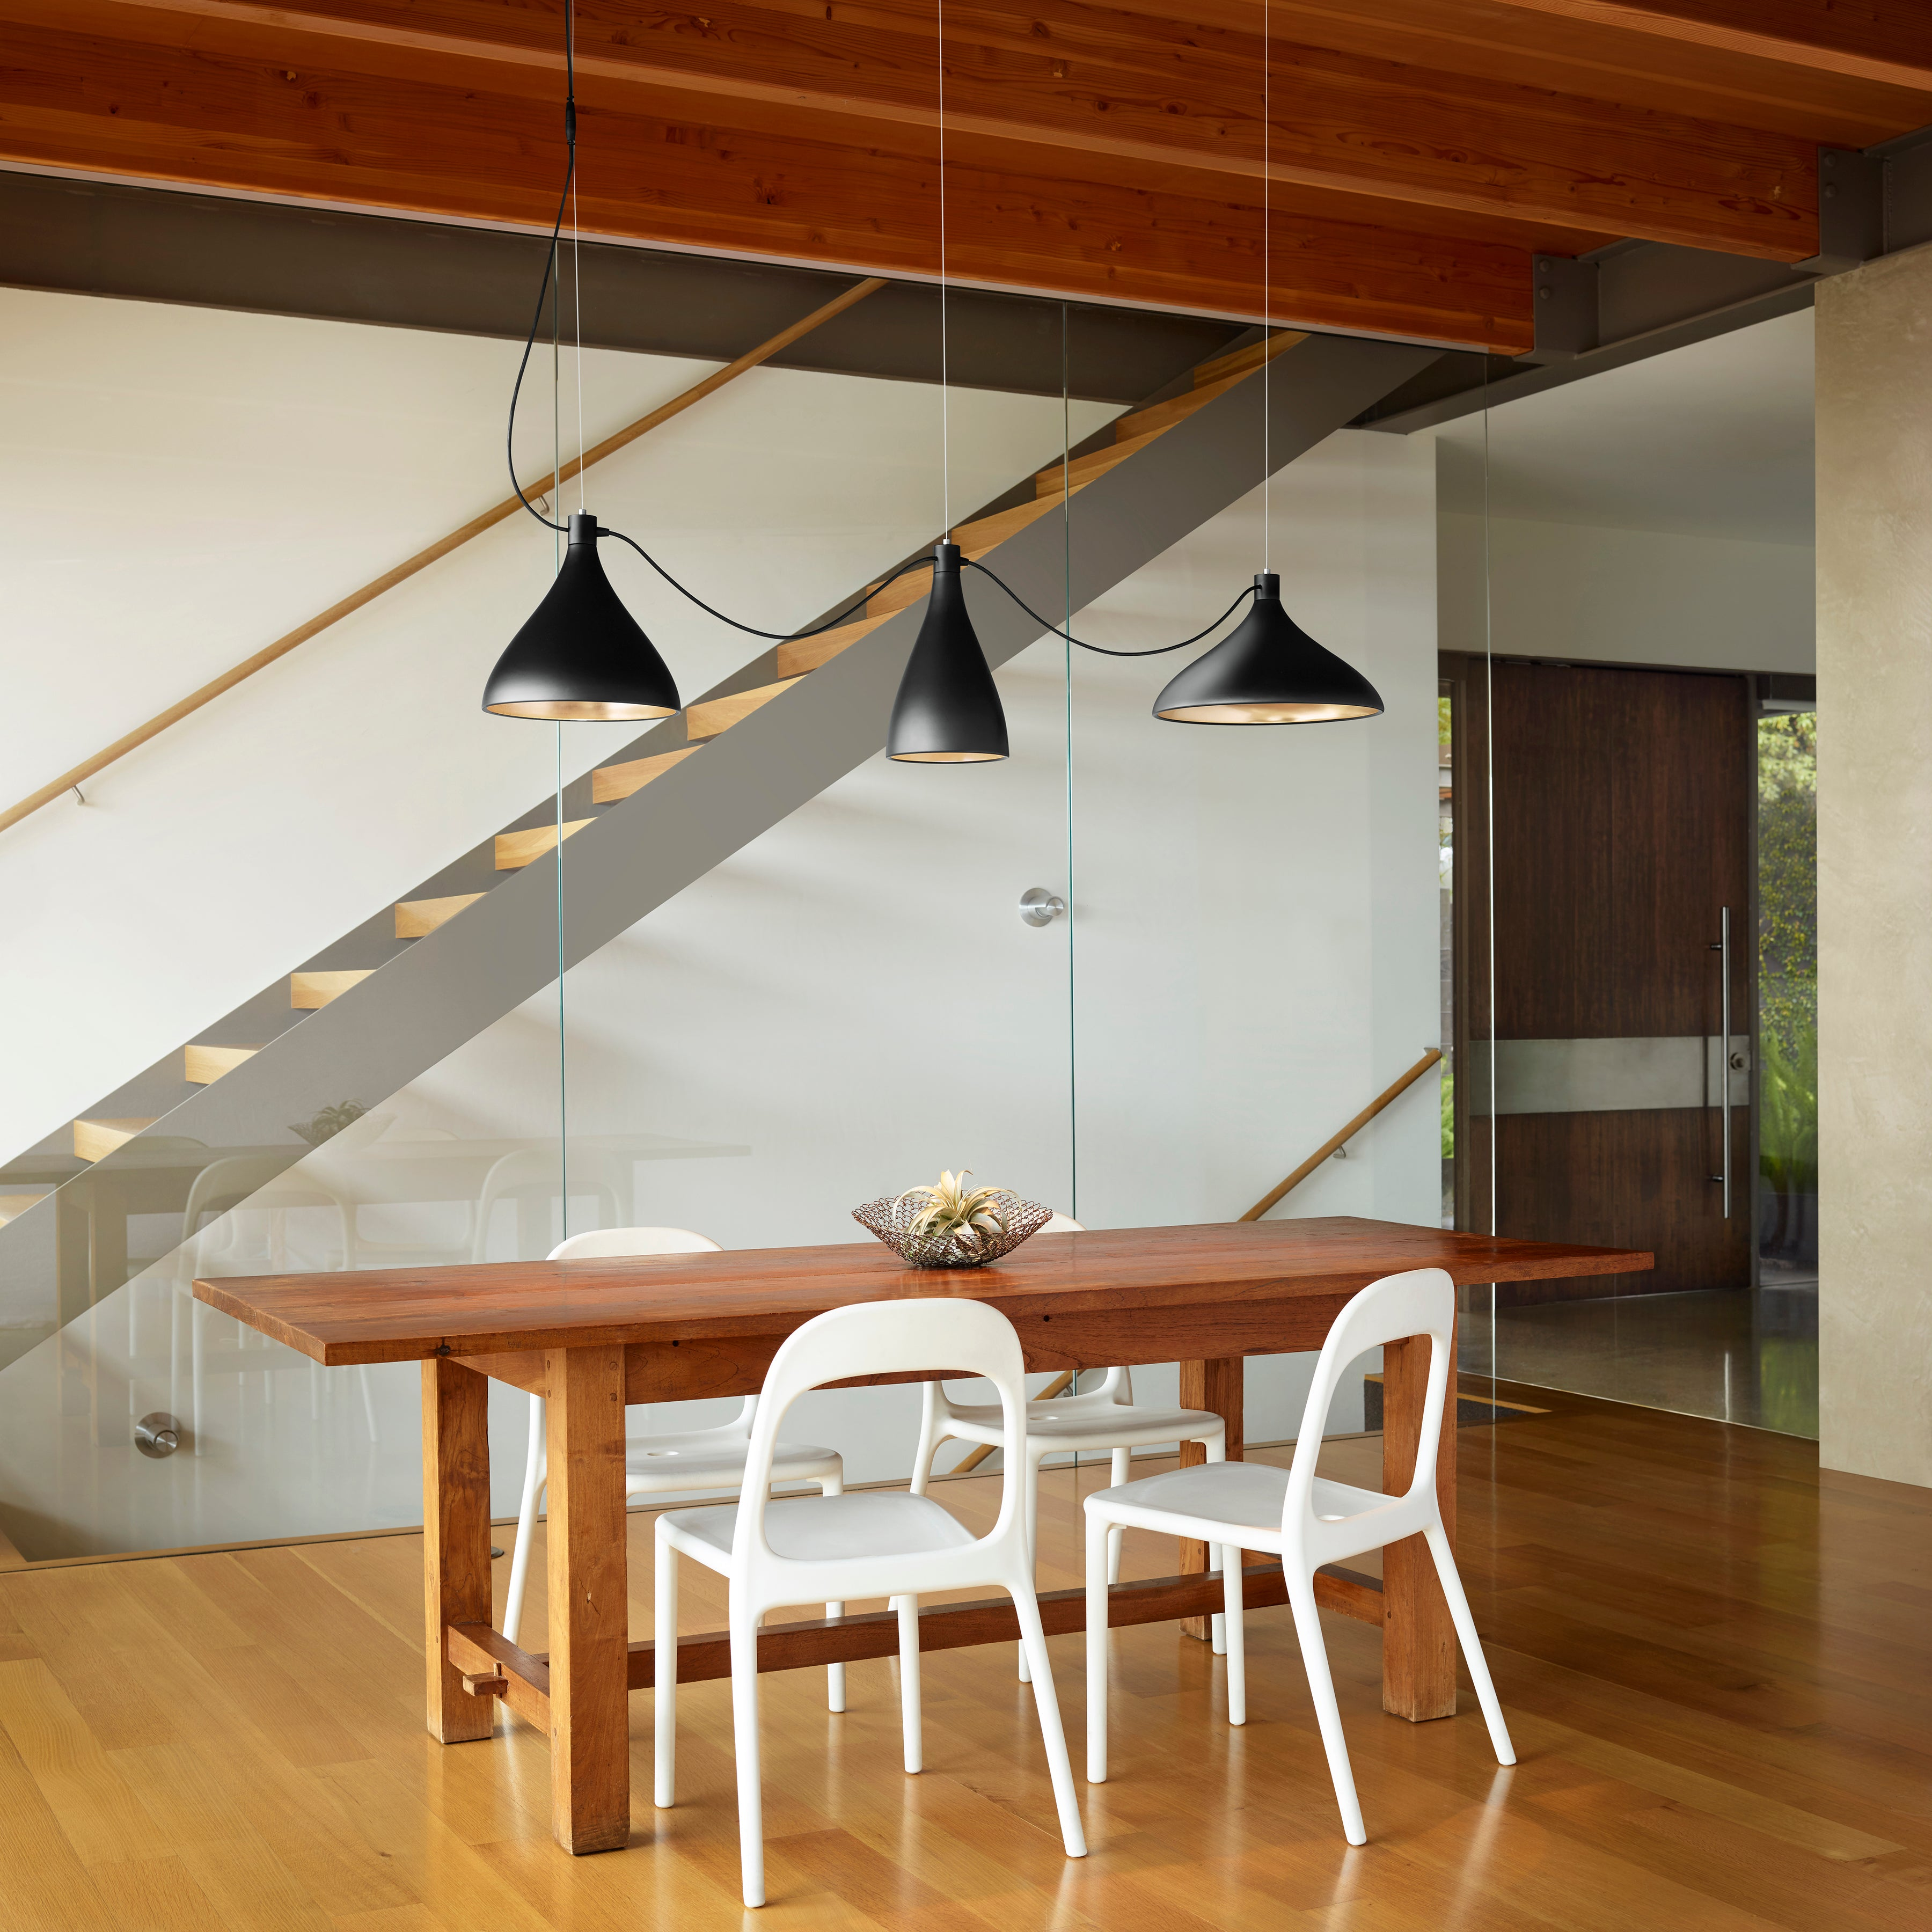 Swell String Indoor/Outdoor Pendant Light